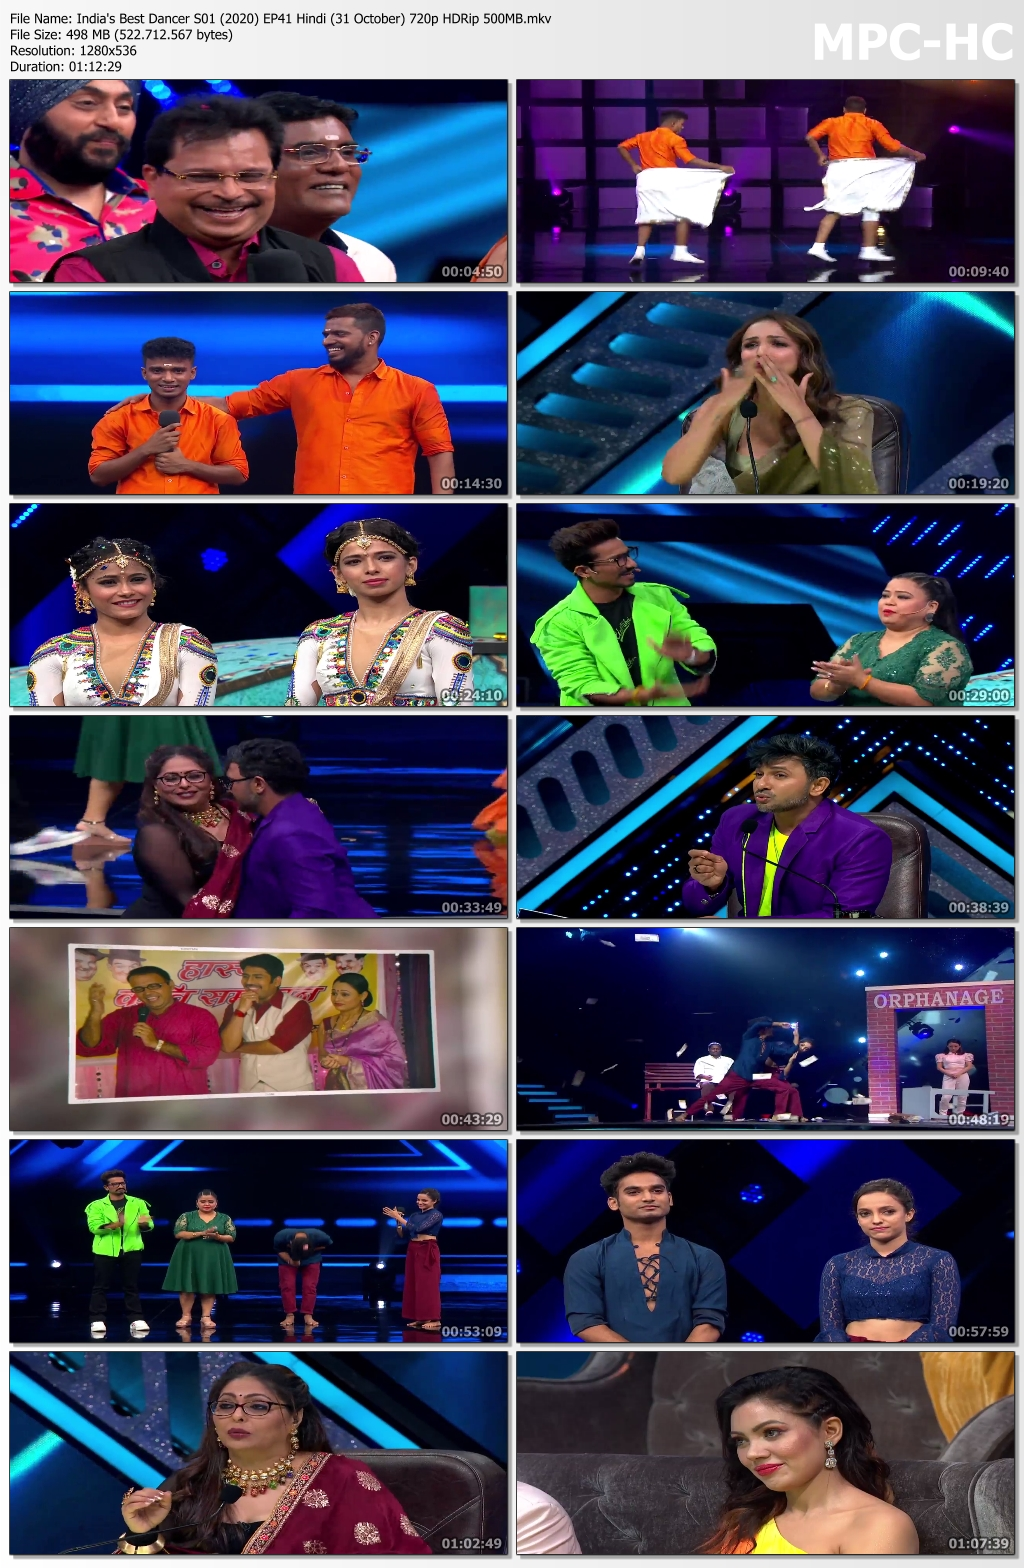 India-s-Best-Dancer-S01-2020-EP41-Hindi-31-October-720p-HDRip-500-MB-mkv-thumbs